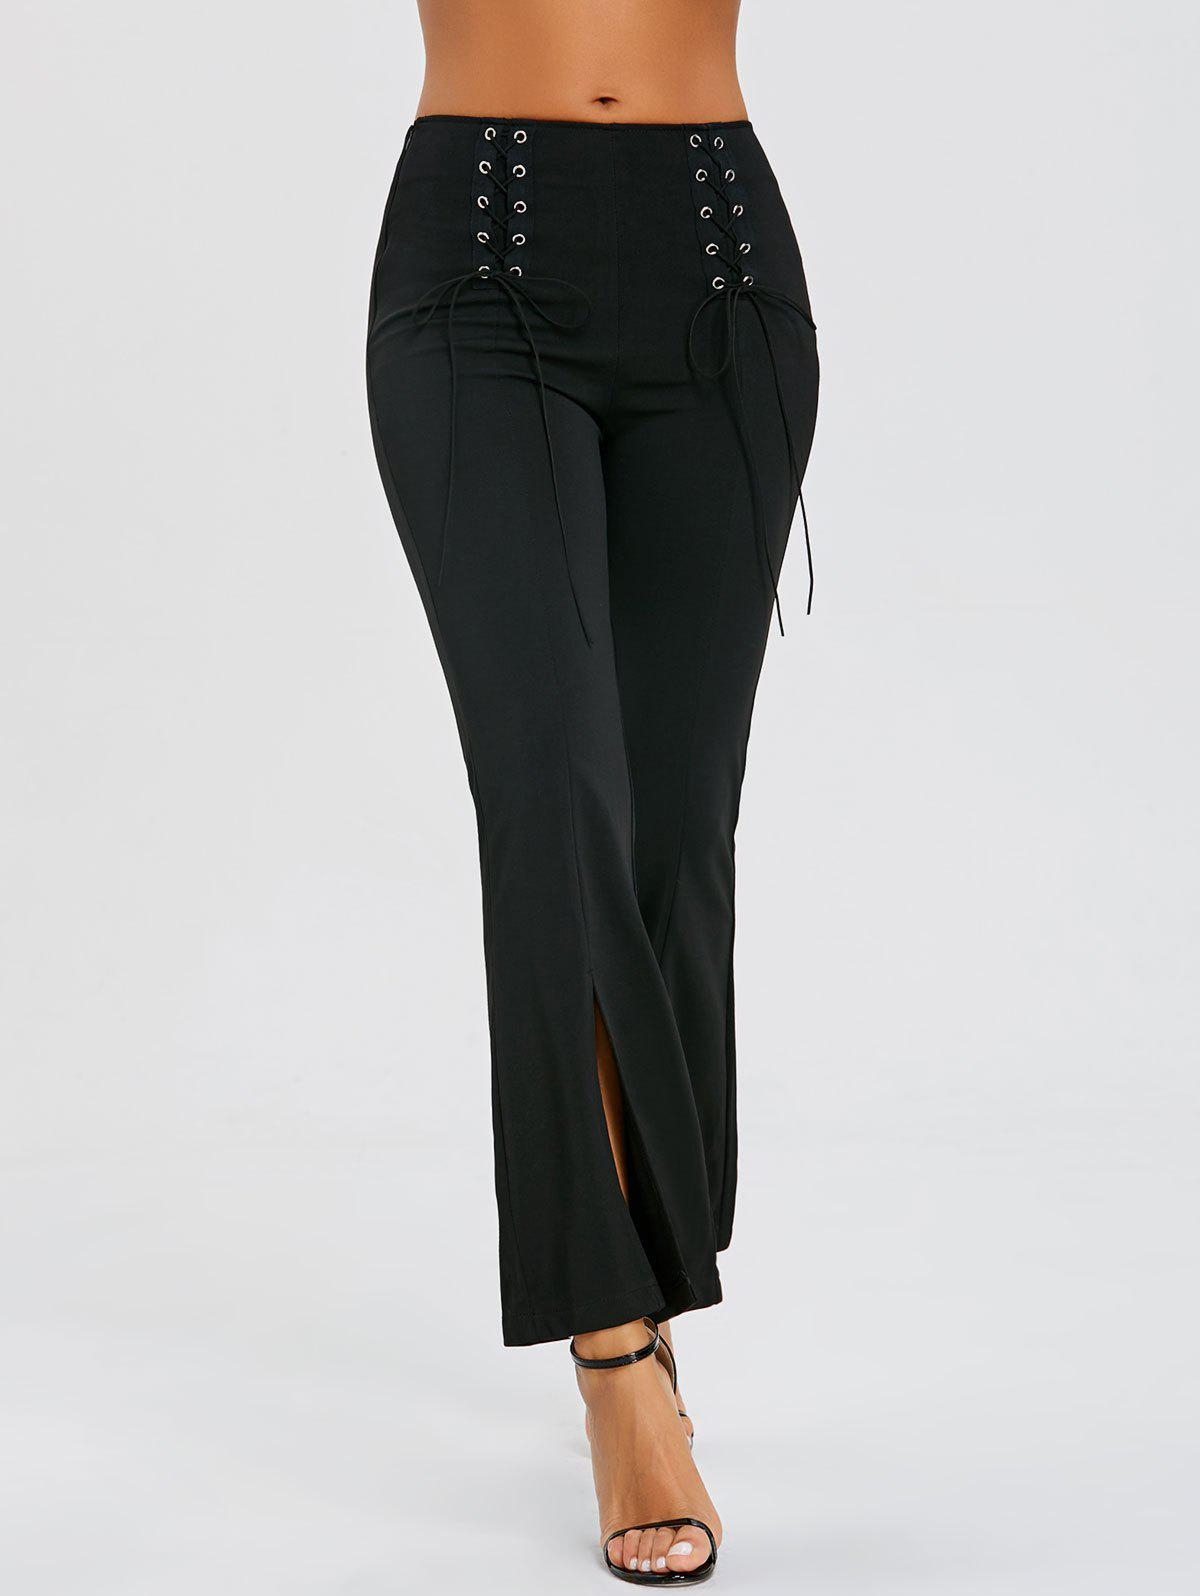 Lace Up Slit High Waisted Bell Bottom Pants - BLACK 2XL